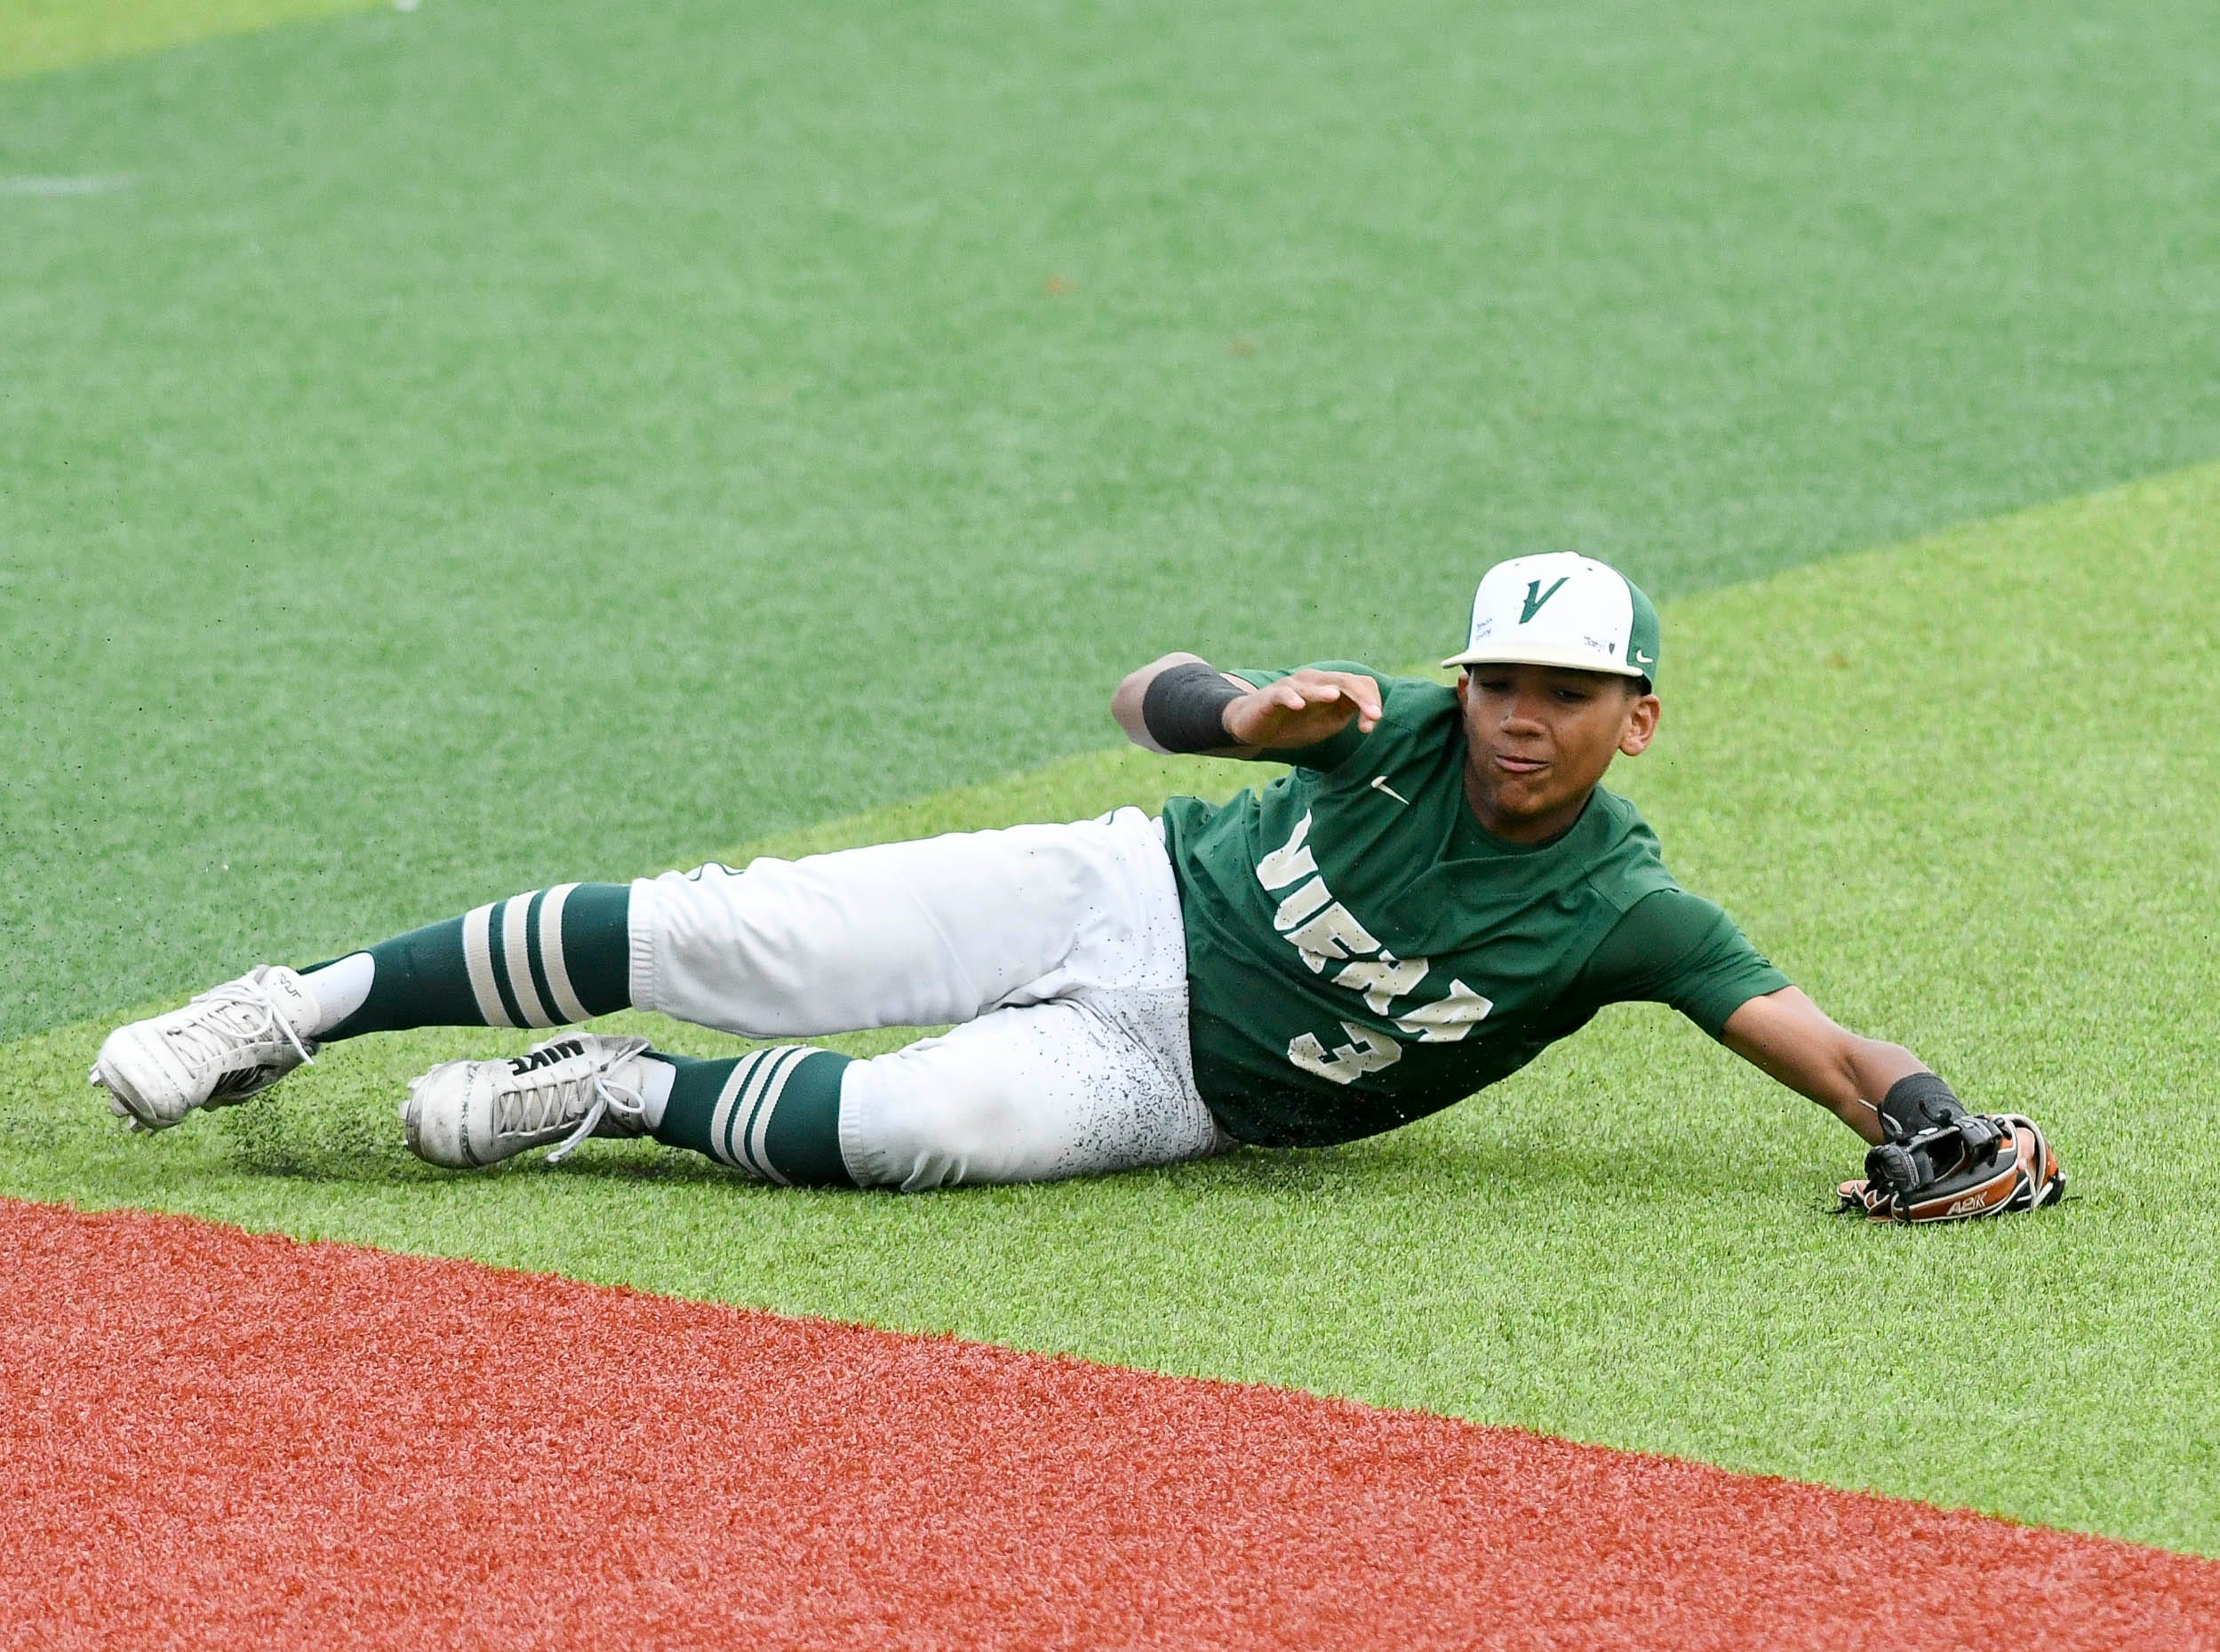 Edian Espinal of Viera is unable to come up with a line drive grounder during Wednesday's game against Sebastian River at USSSA Space Coast Stadium.